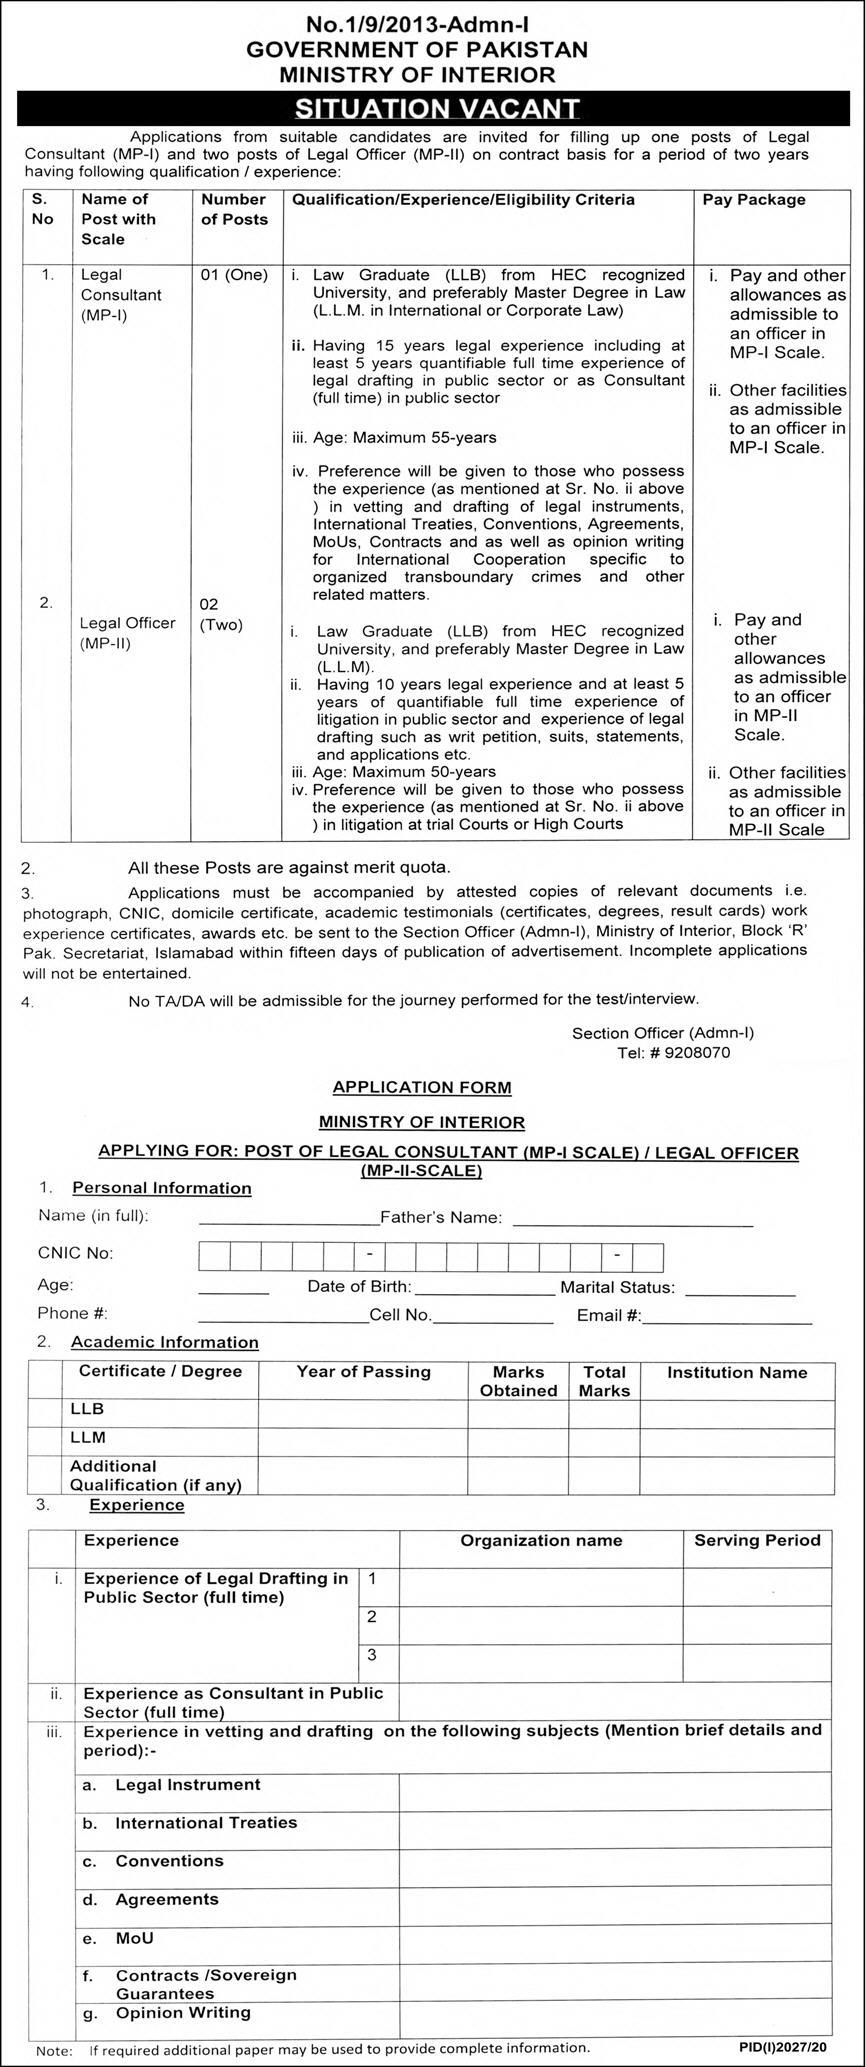 Government of Pakistan Ministry of Interior Jobs October 2020